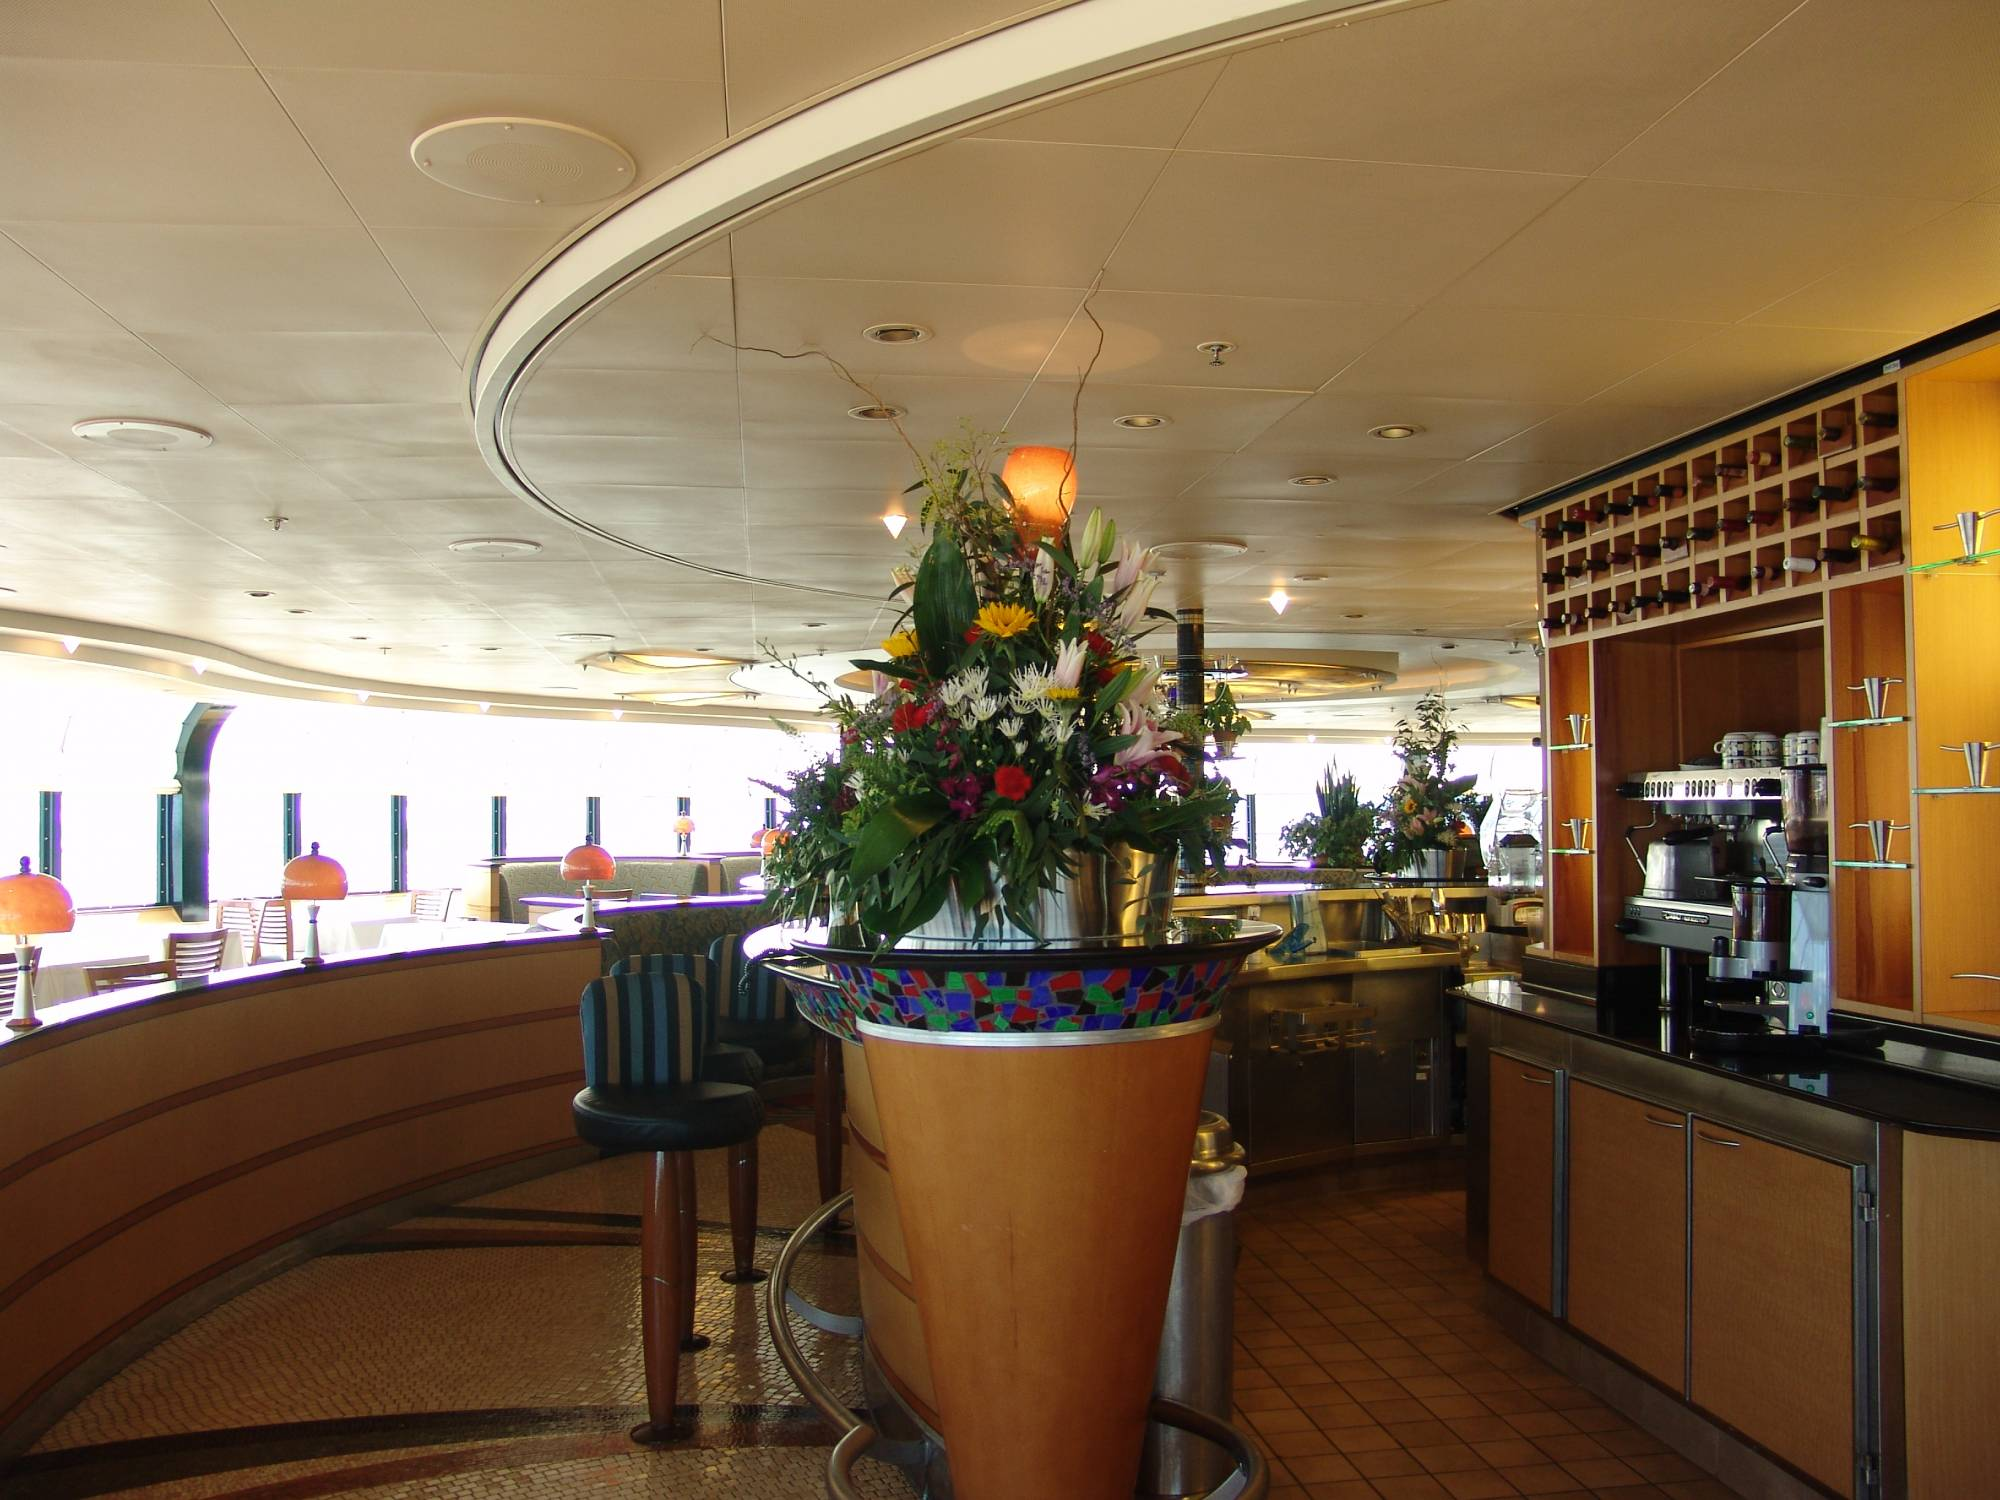 Compare Palo Restaurants onboard the Disney Cruise Ships |PassPorter.com